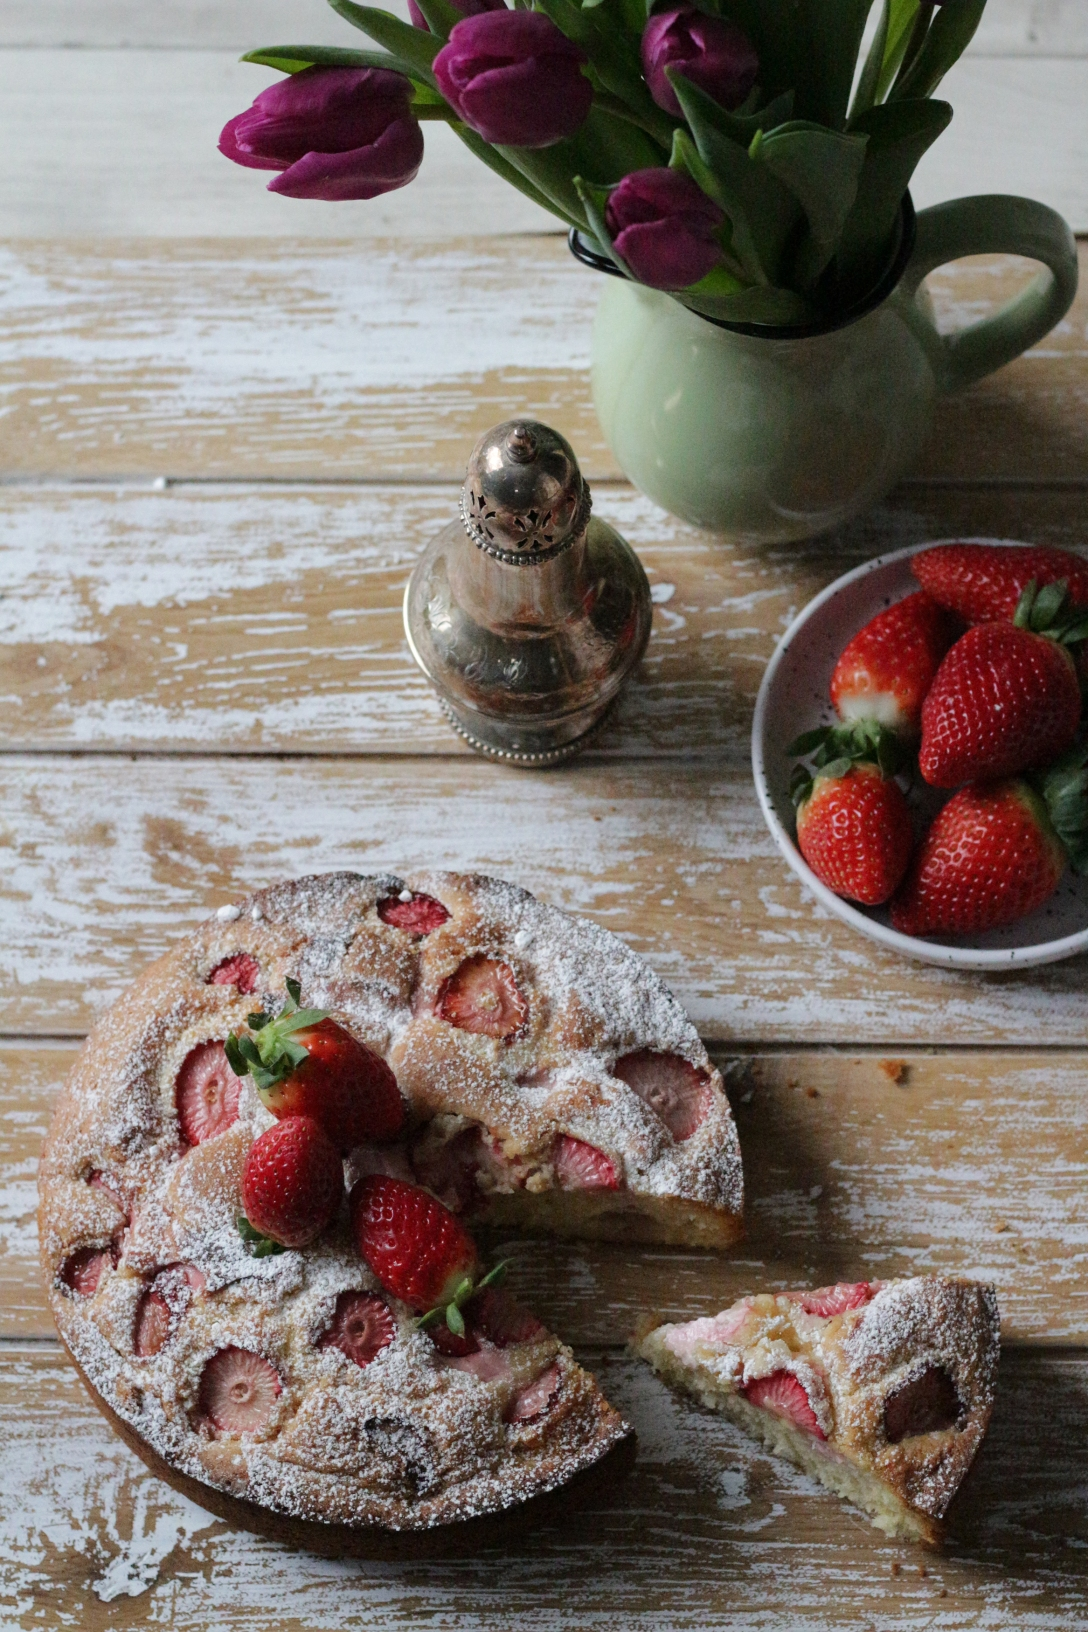 Strawberry yogurt and olive oil cake - - www.inksugarspice.wordpress.com #recipe #baking